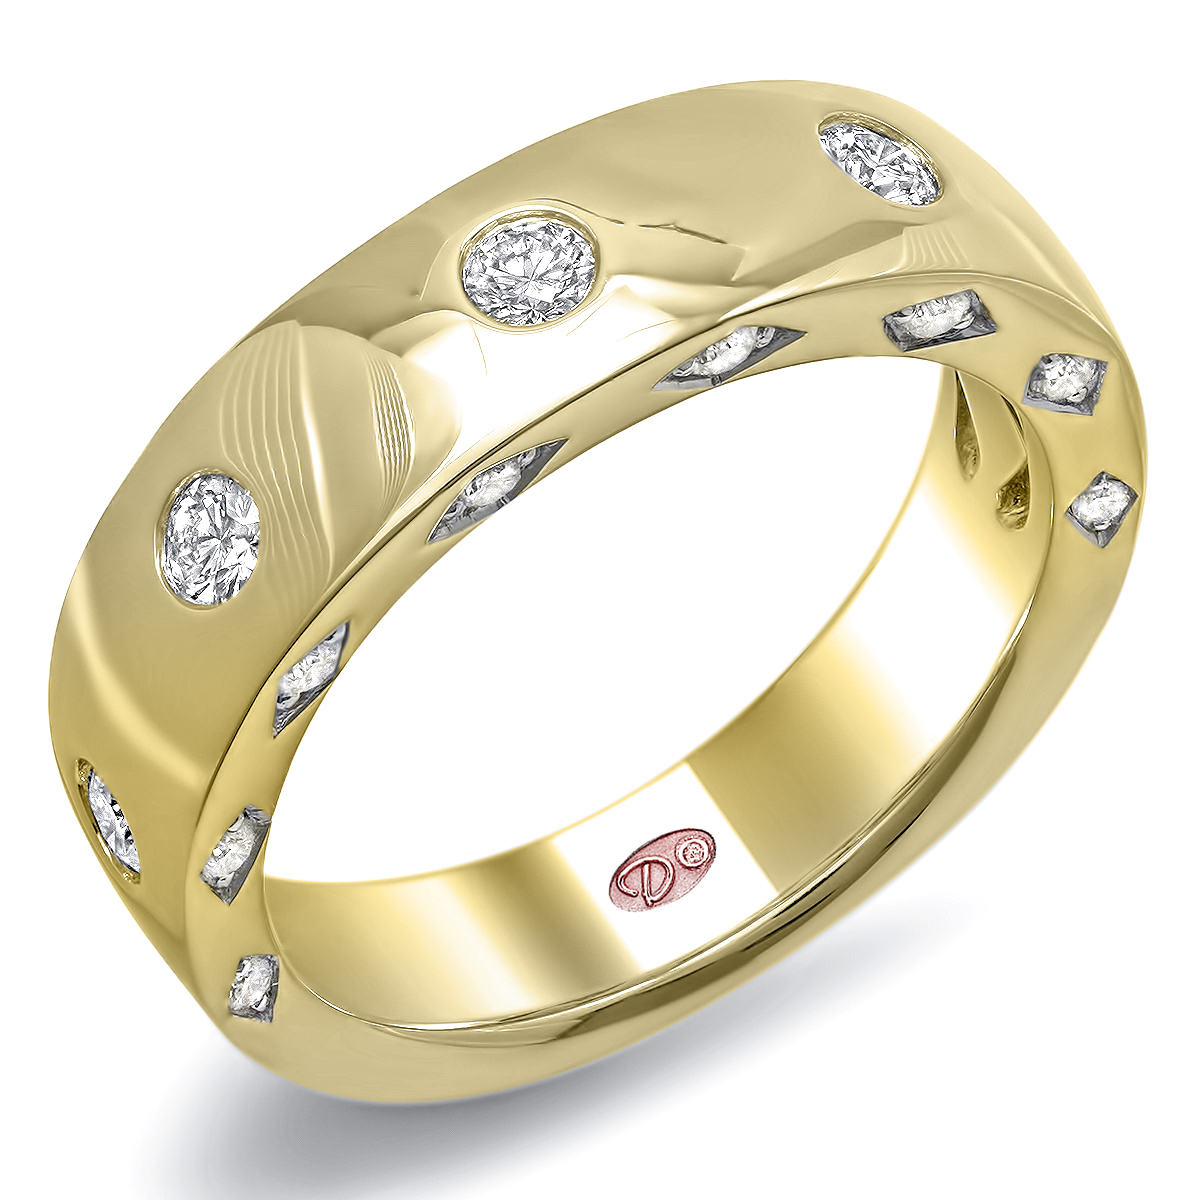 wilners jewelers designer engagement jewelry and rings demarco bridal jewelry